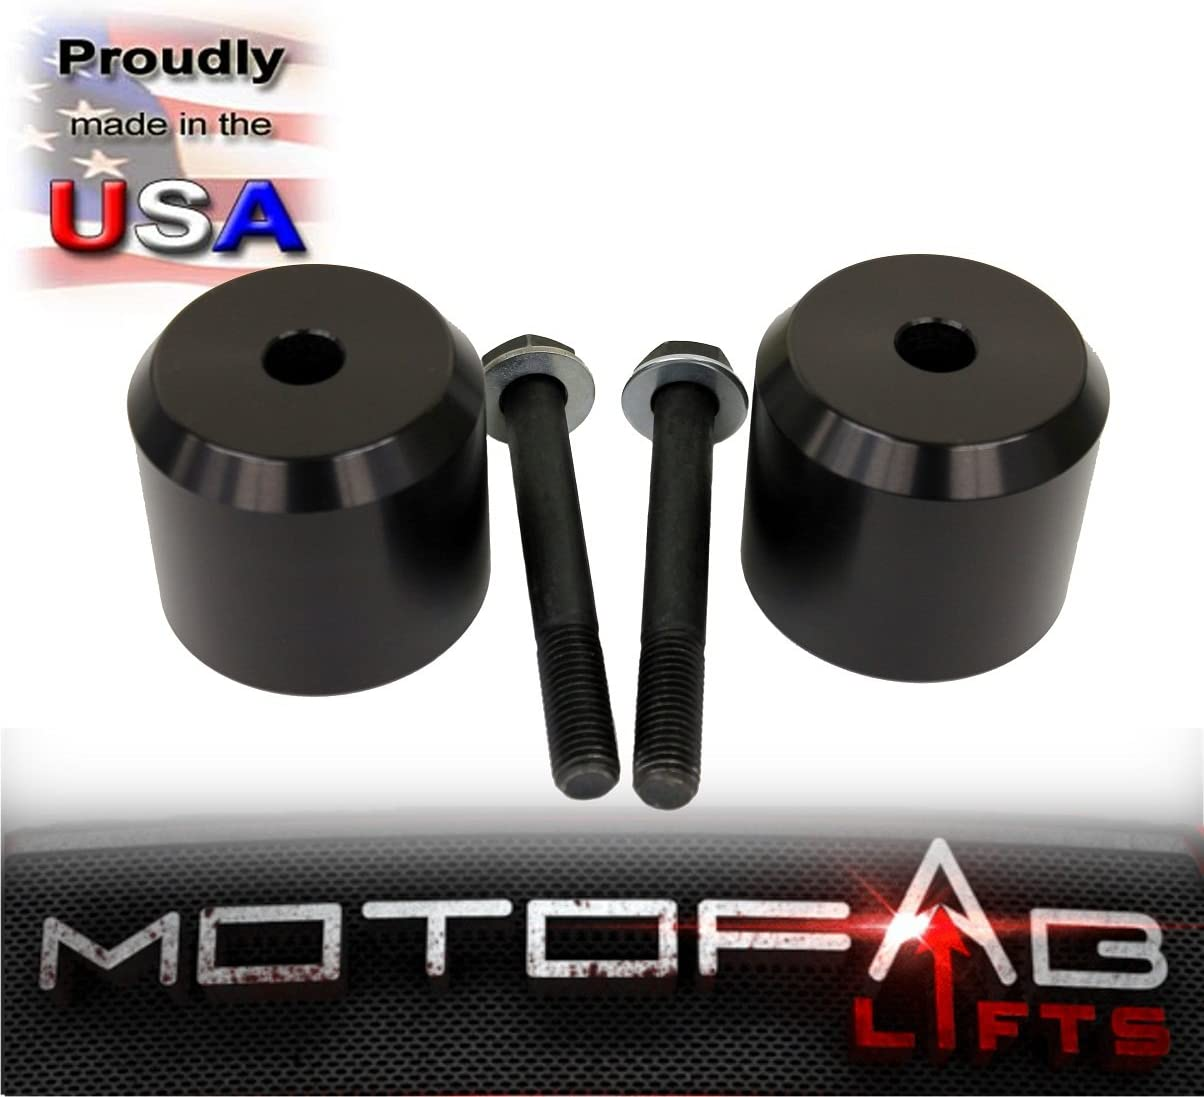 MotoFab Lifts 2.5 Front Leveling Lift kit for 2005-2016 Ford F250 F350 SUPER DUTY 4WD USA